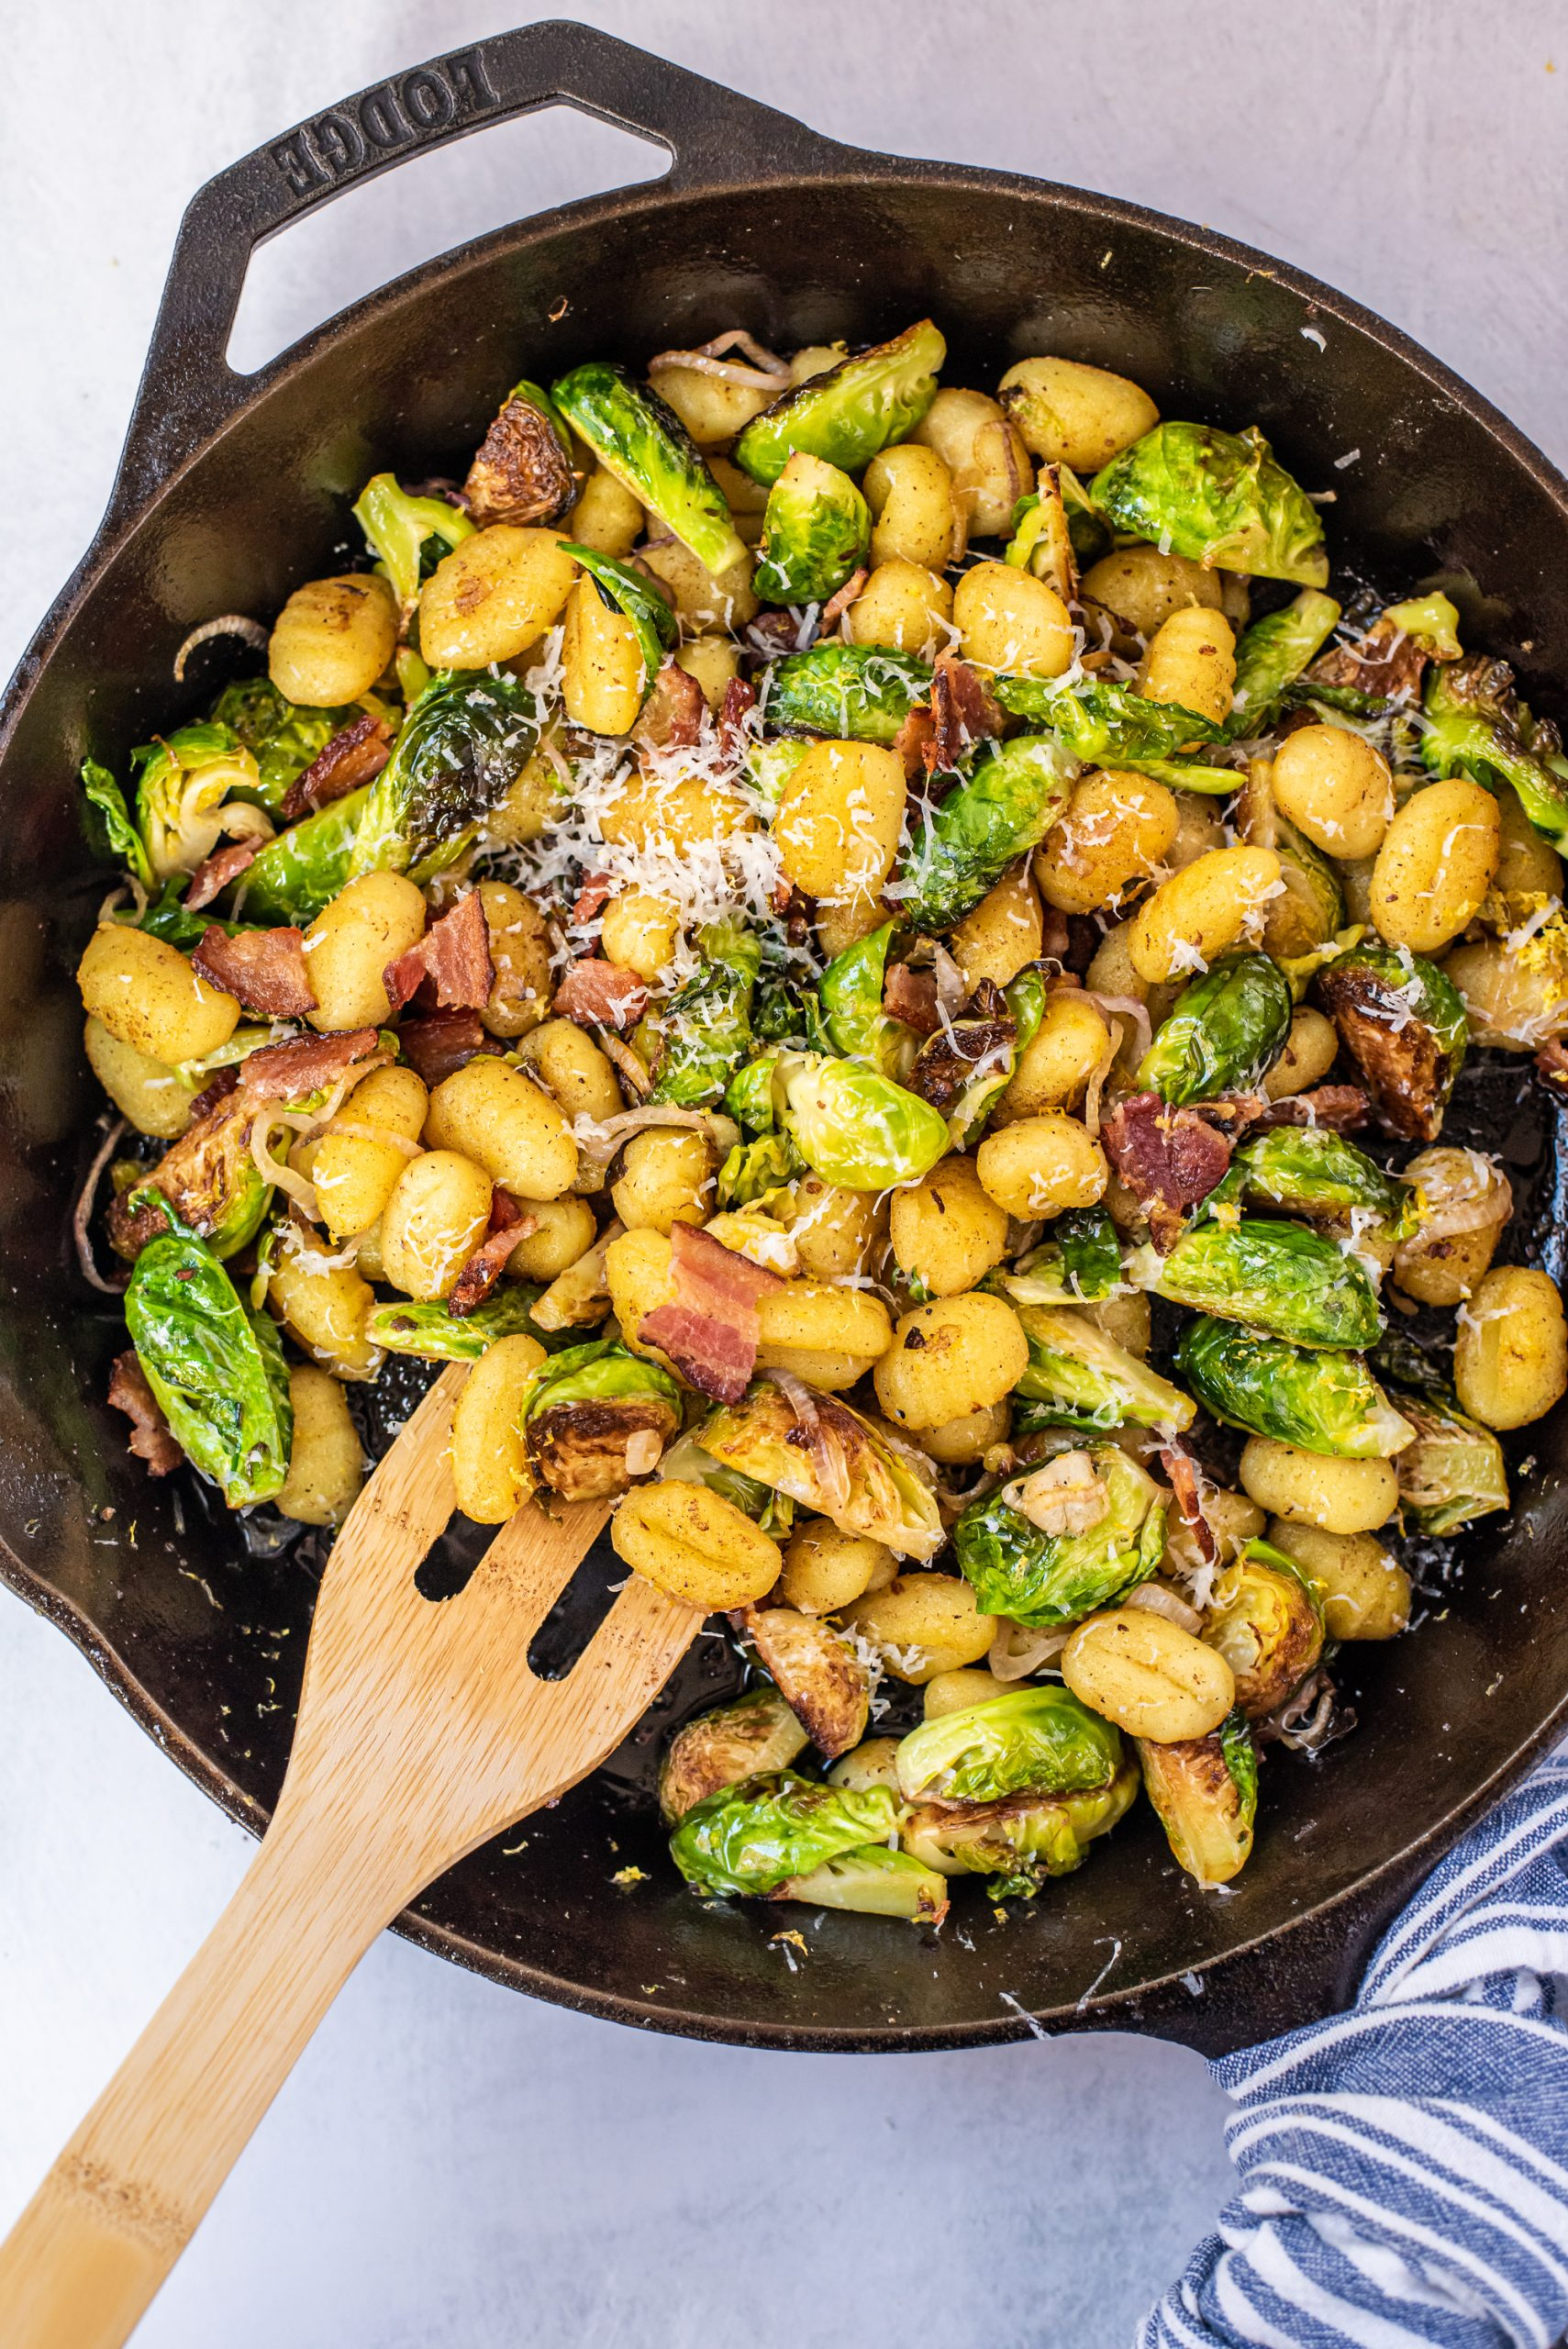 Skillet Gnocchi with Brussels Sprouts